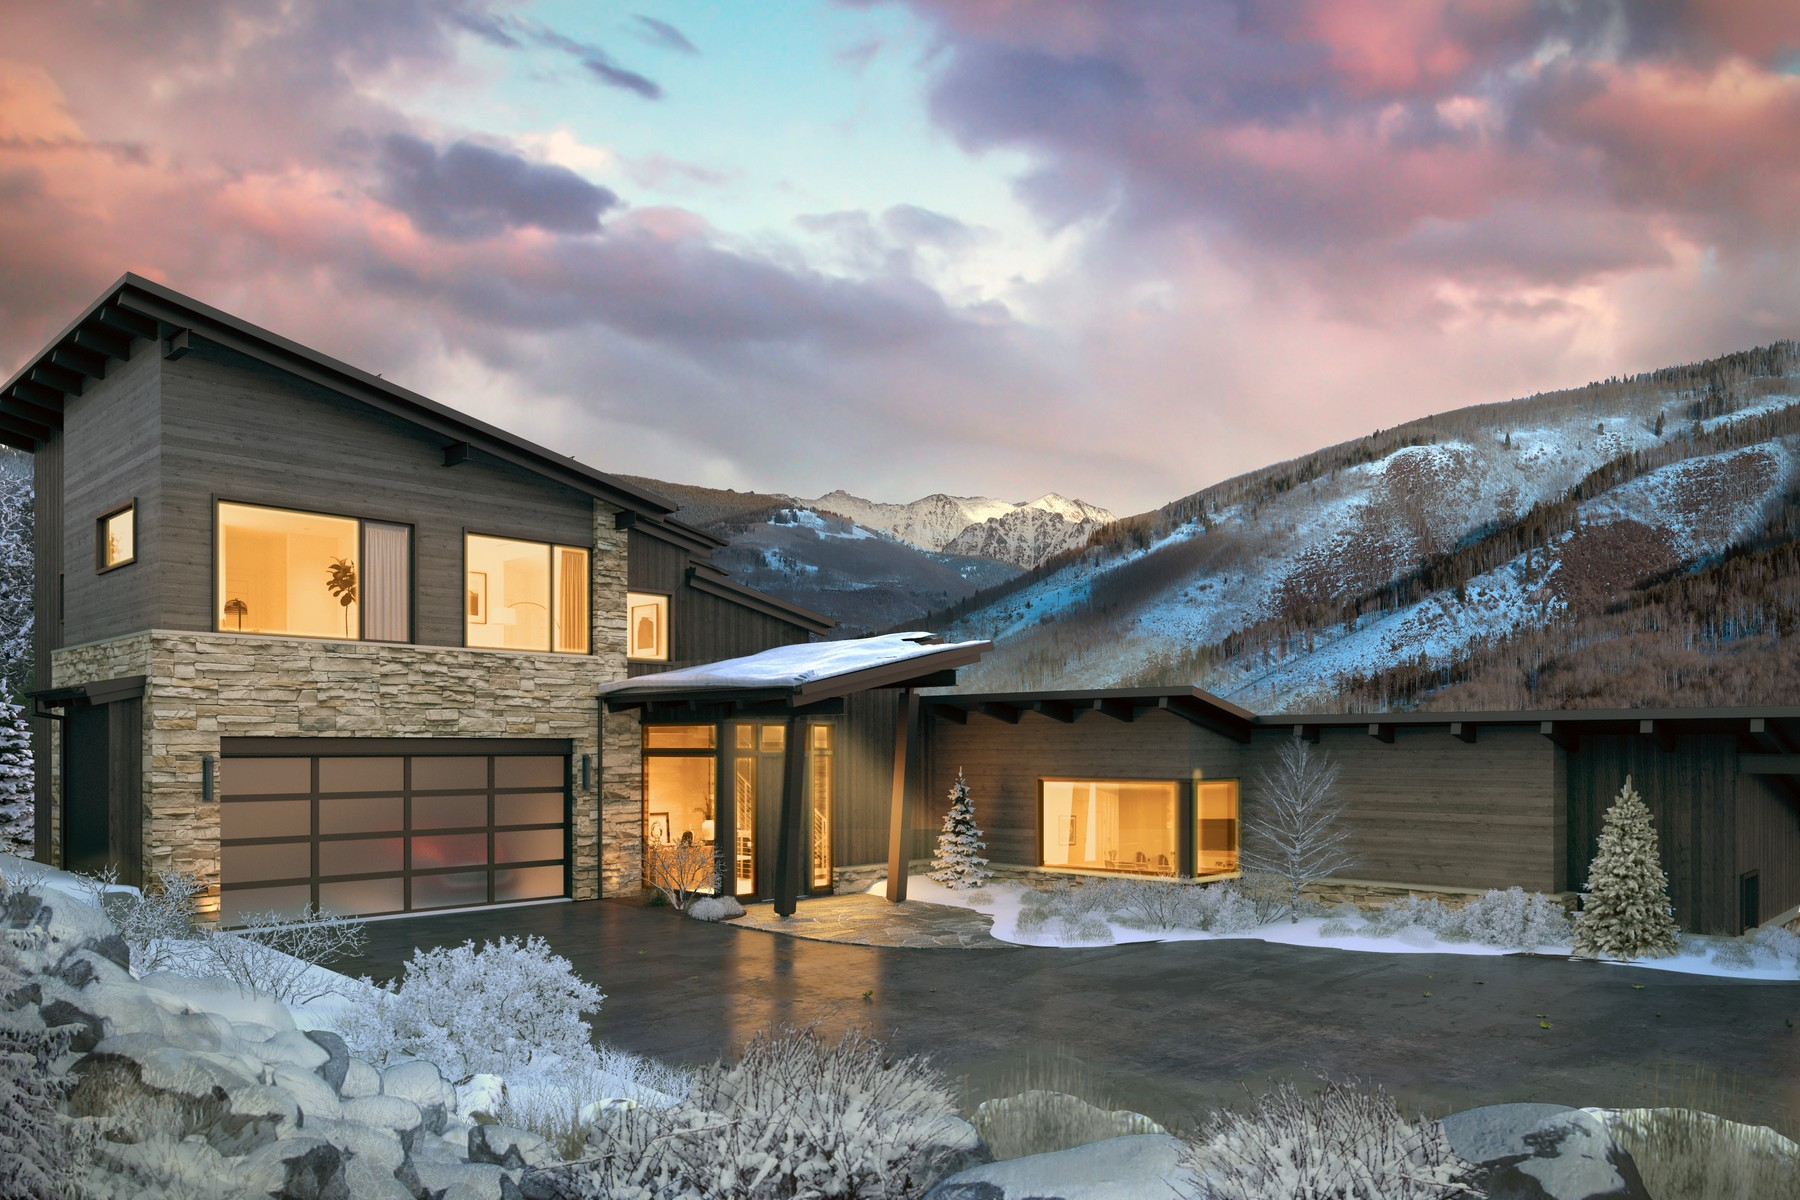 Single Family Homes for Sale at Spectacular 5-bedroom, 5.5 bathroom new construction single family home 2698 Cortina Lane Vail, Colorado 81657 United States